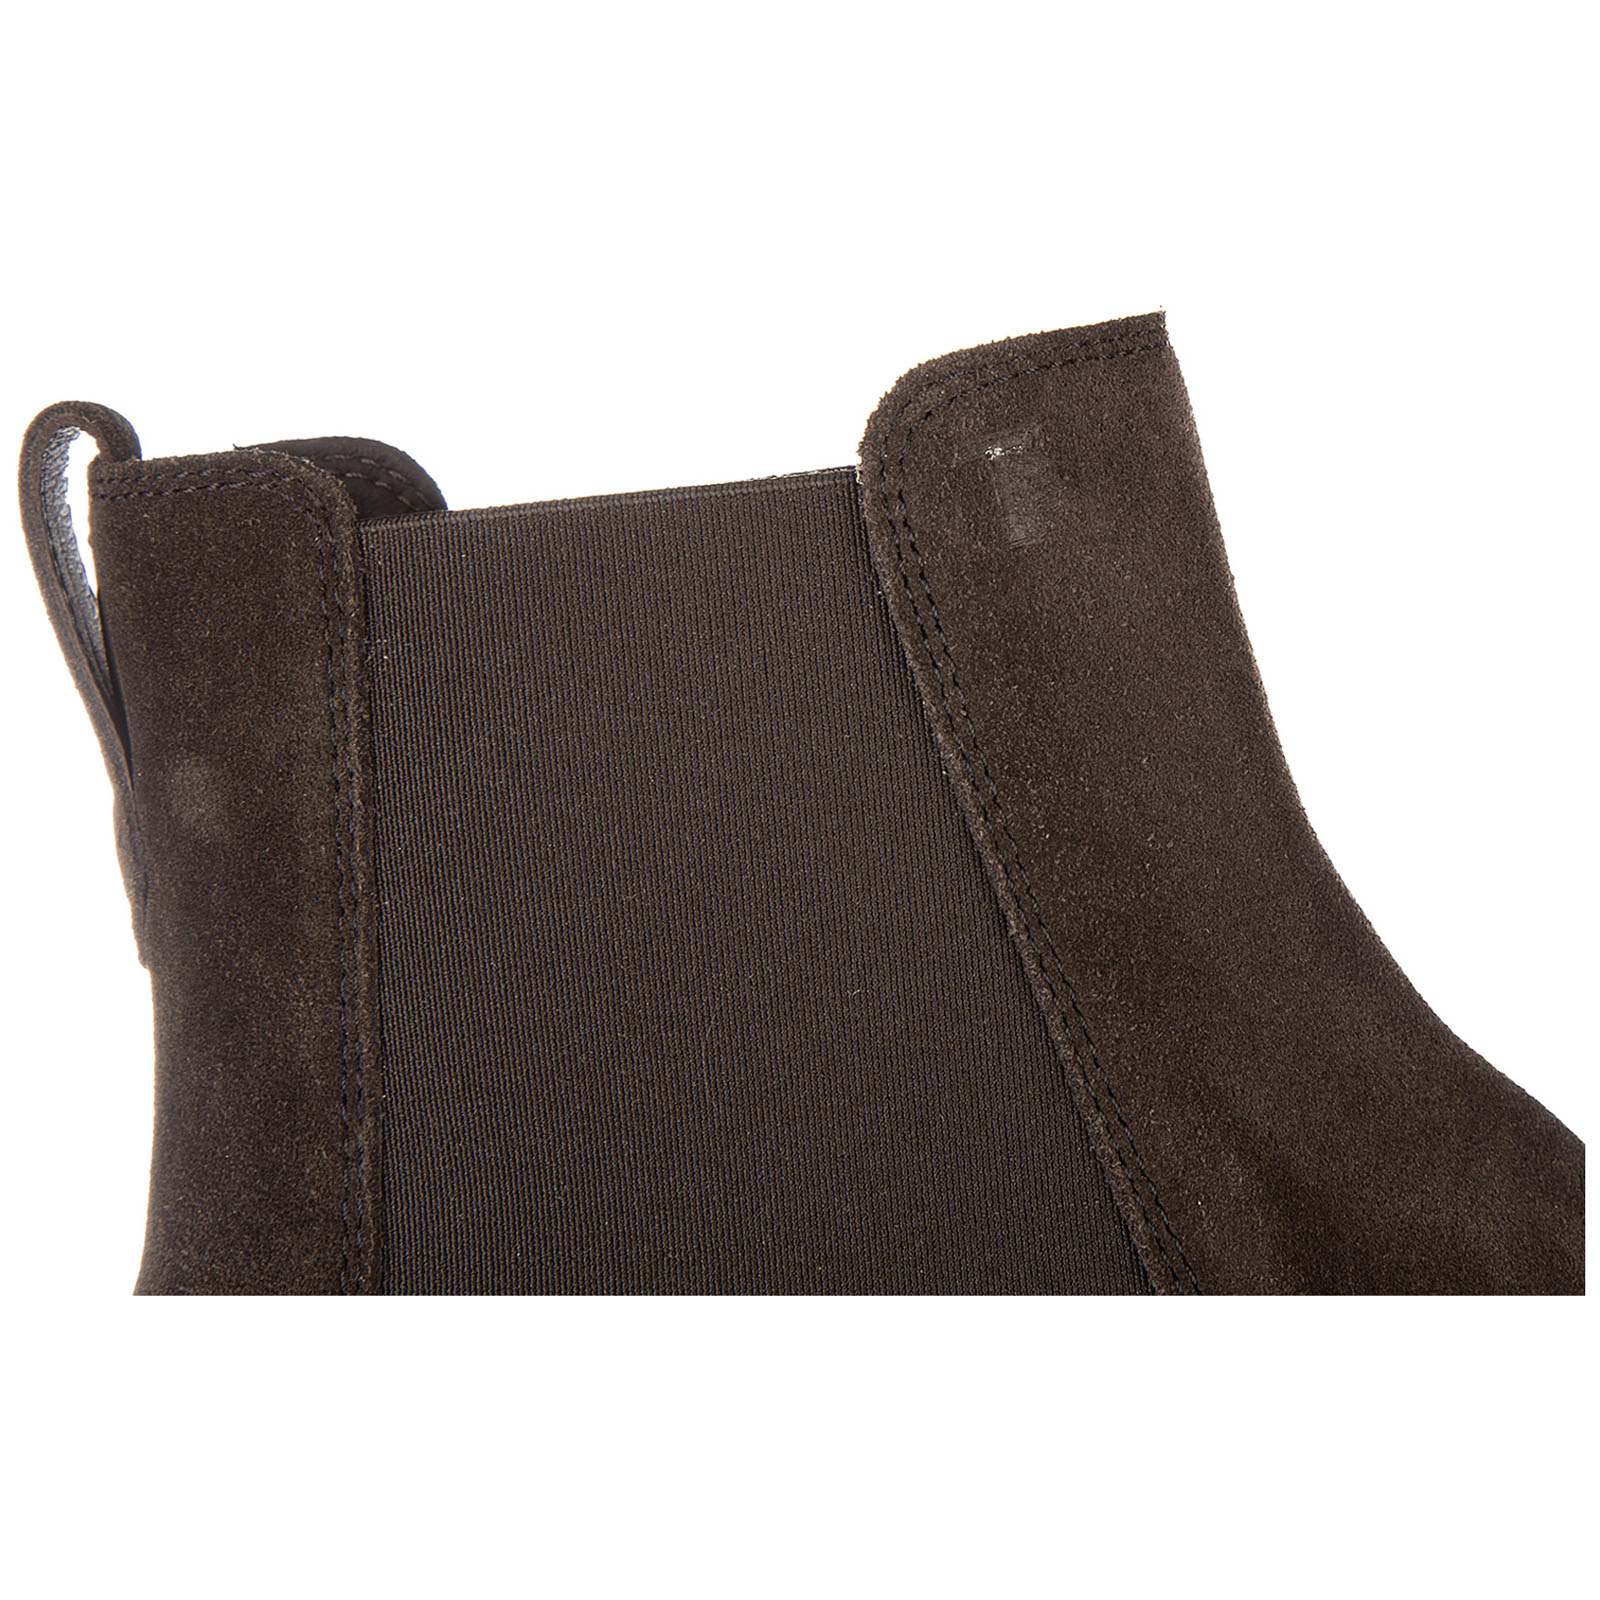 Men's suede ankle boots